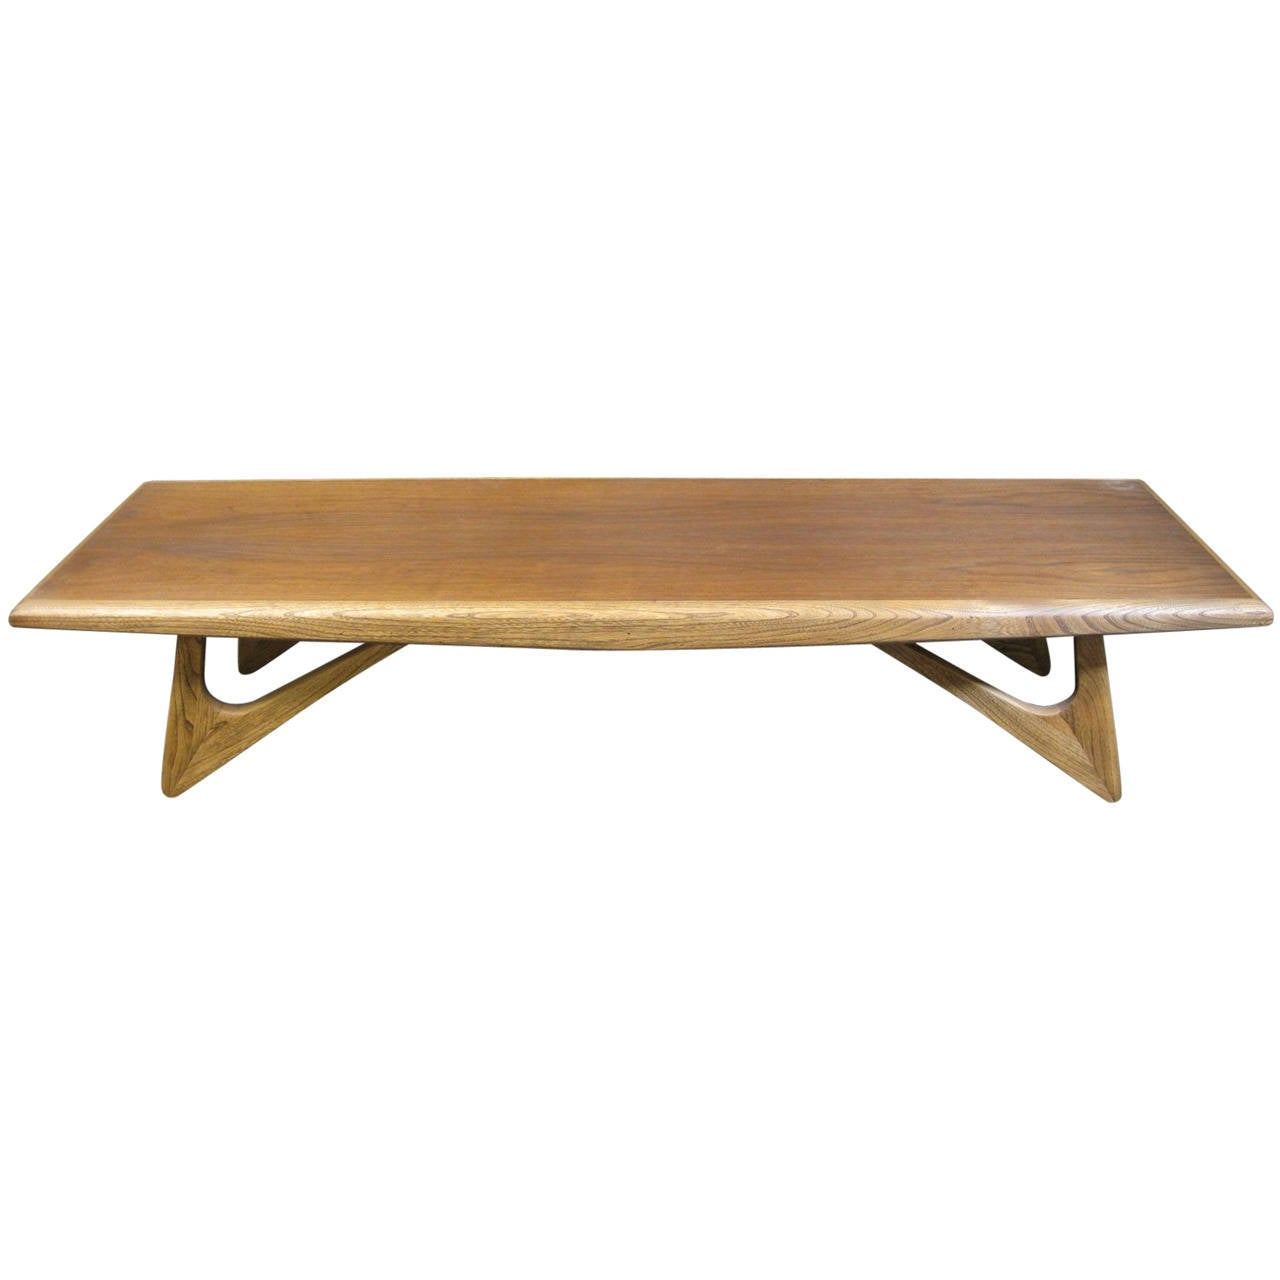 Adrian pearsall style coffee table mid century modern at 1stdibs Mid century coffee tables